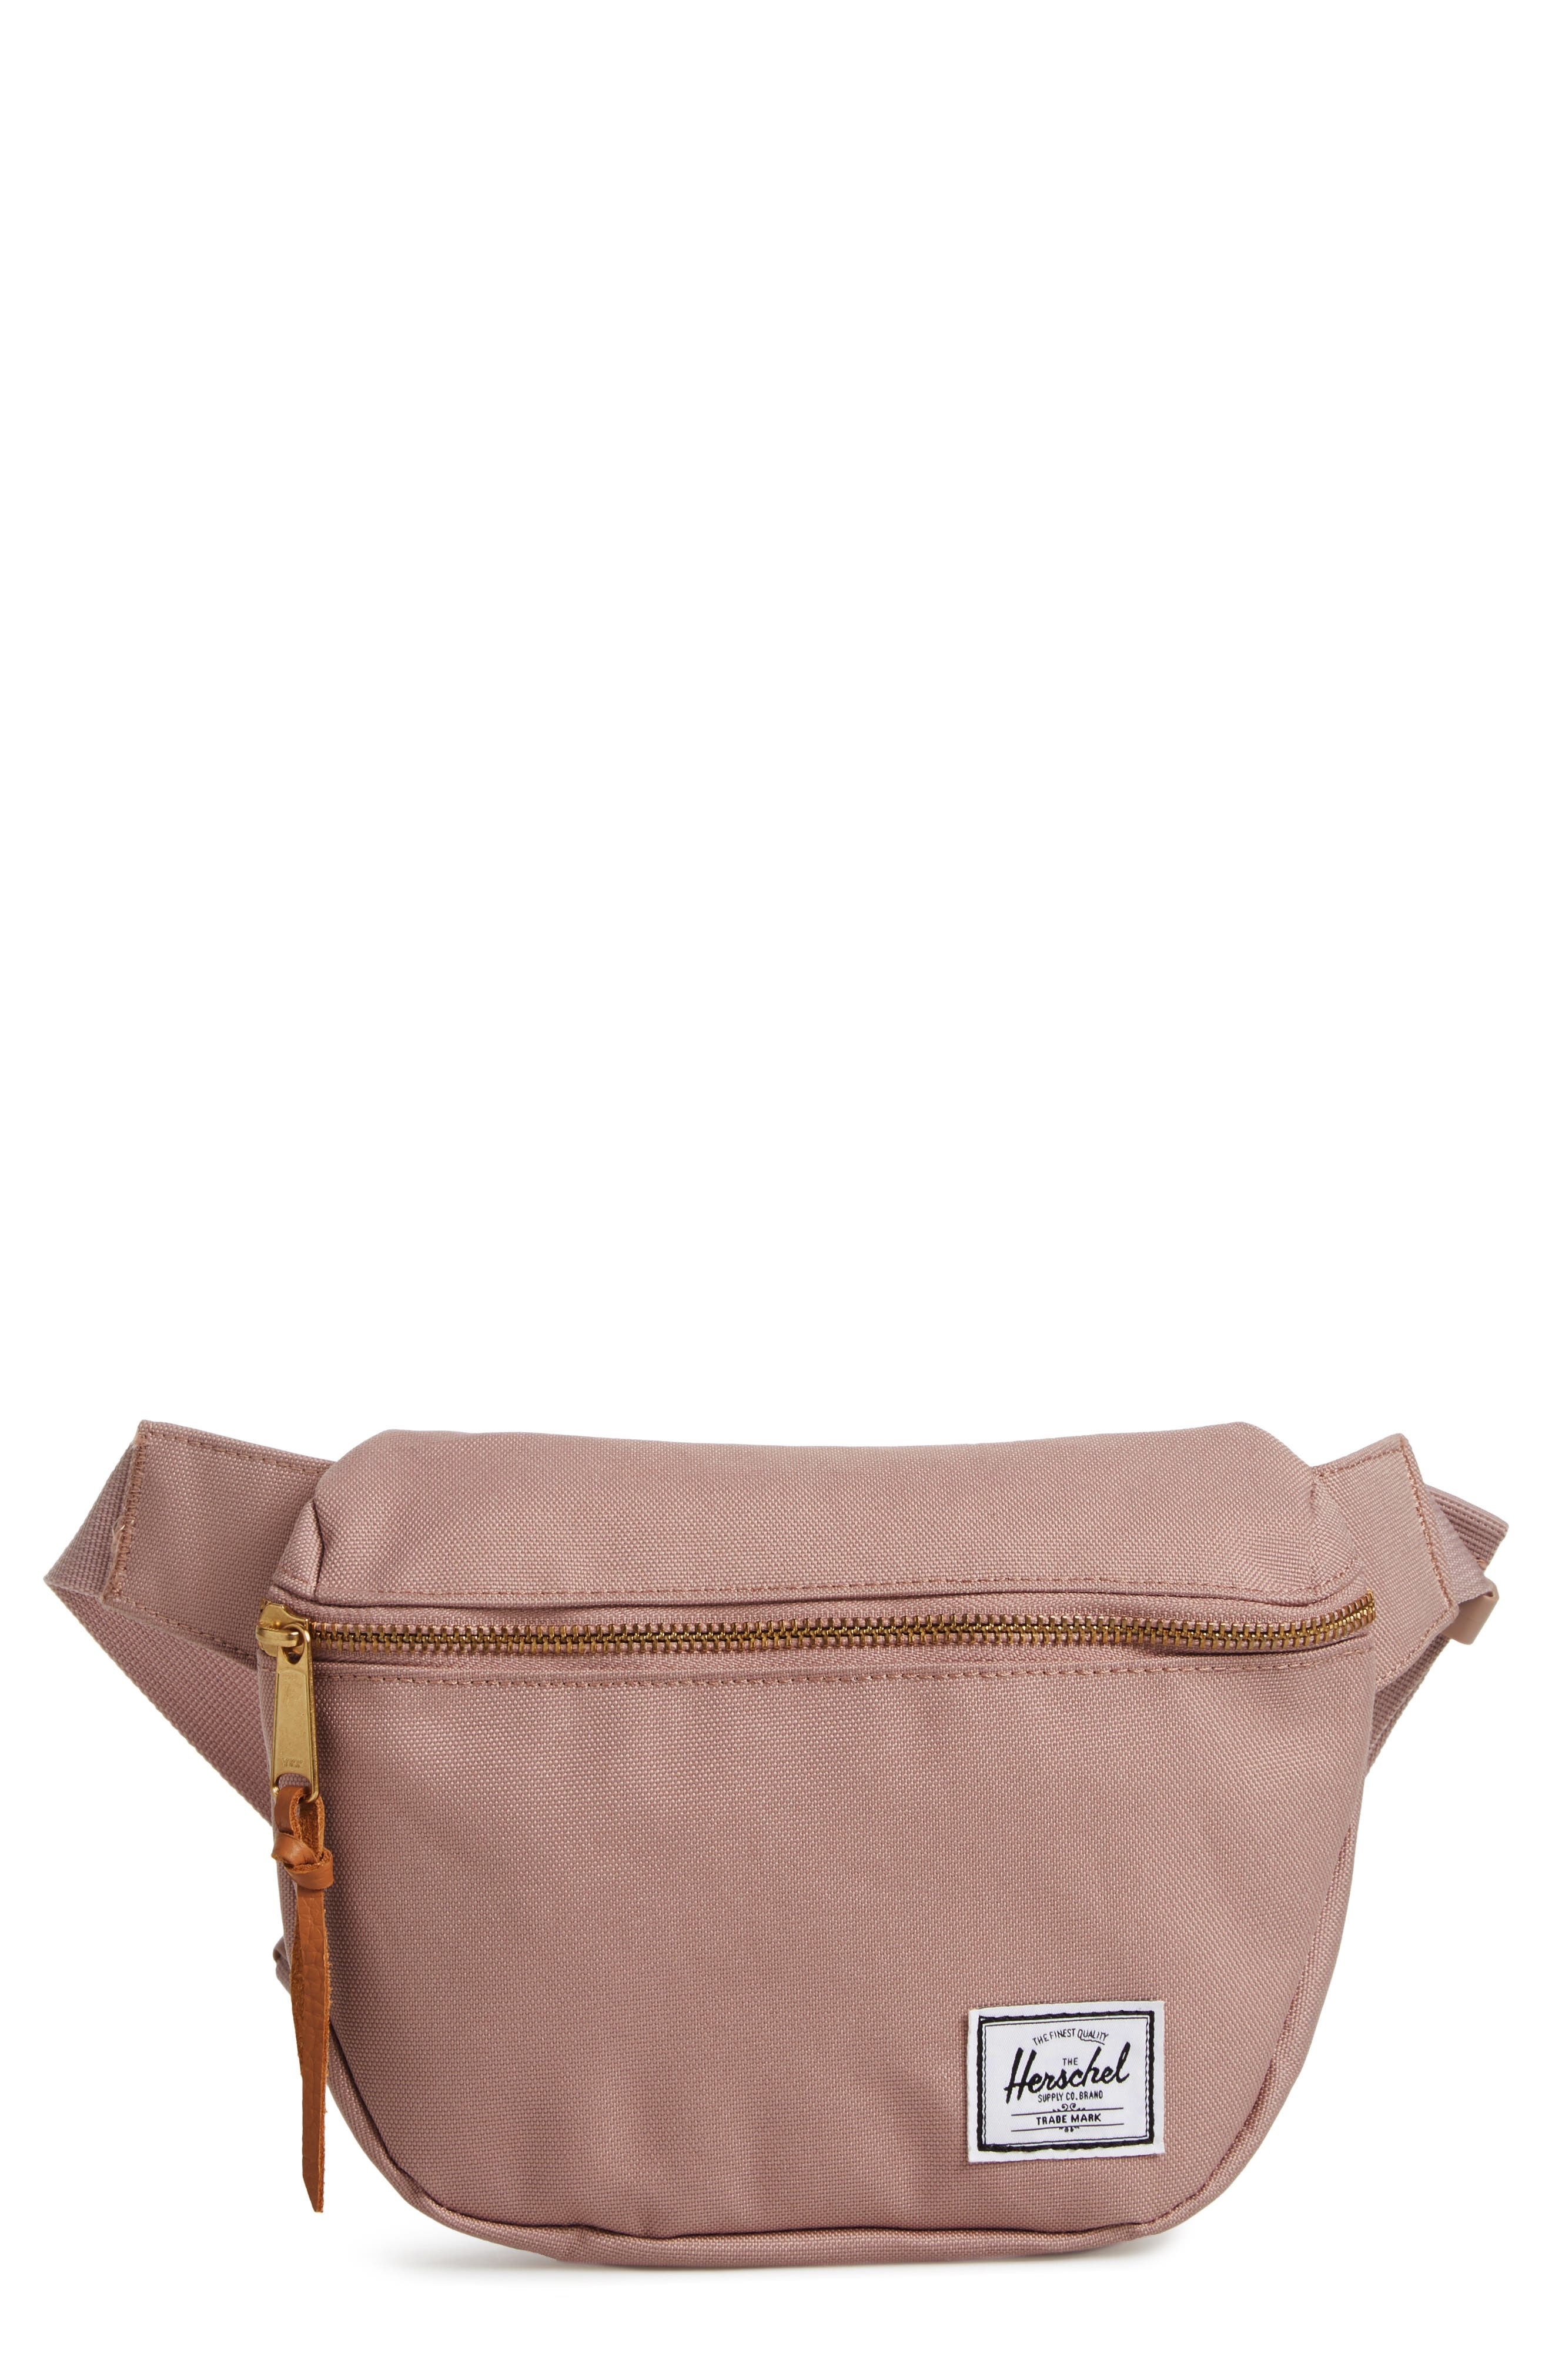 Waist Bags Wear To Where Looks For Every Occasion Women Nordstrom Sakroots Medium Satchel Bag Radiant One World